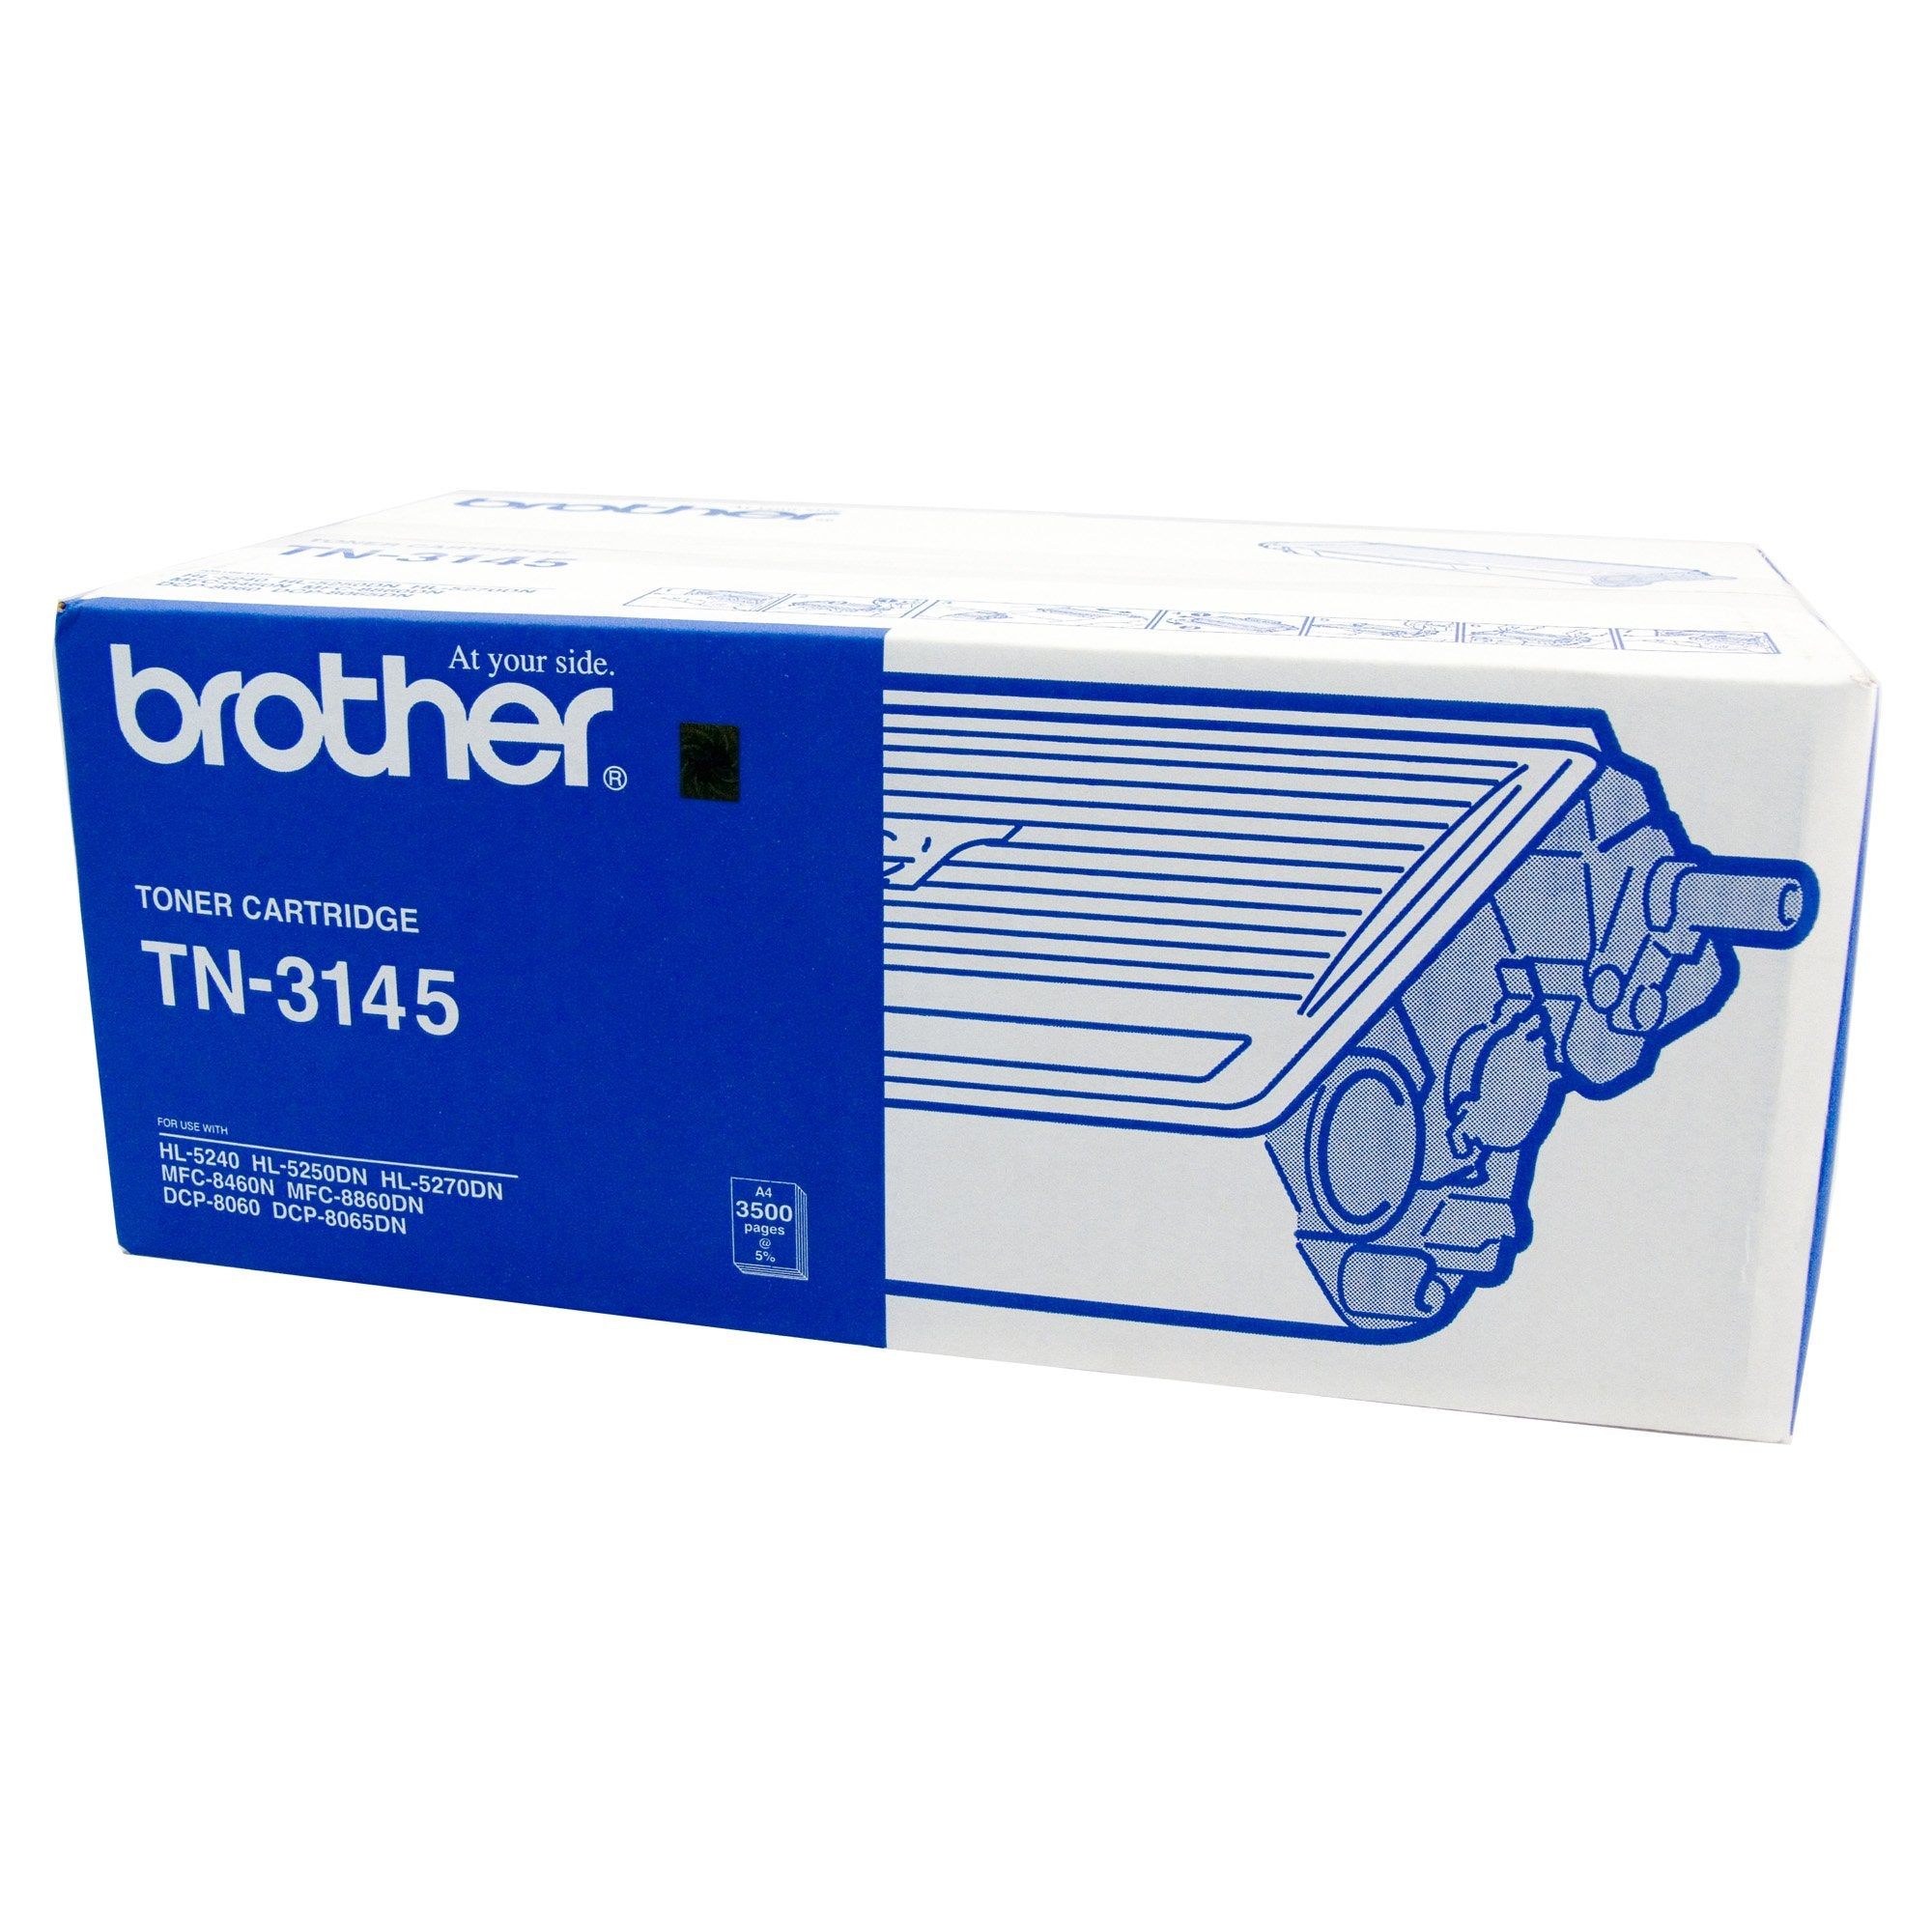 Brother TN-3145 Black Toner Cartridge